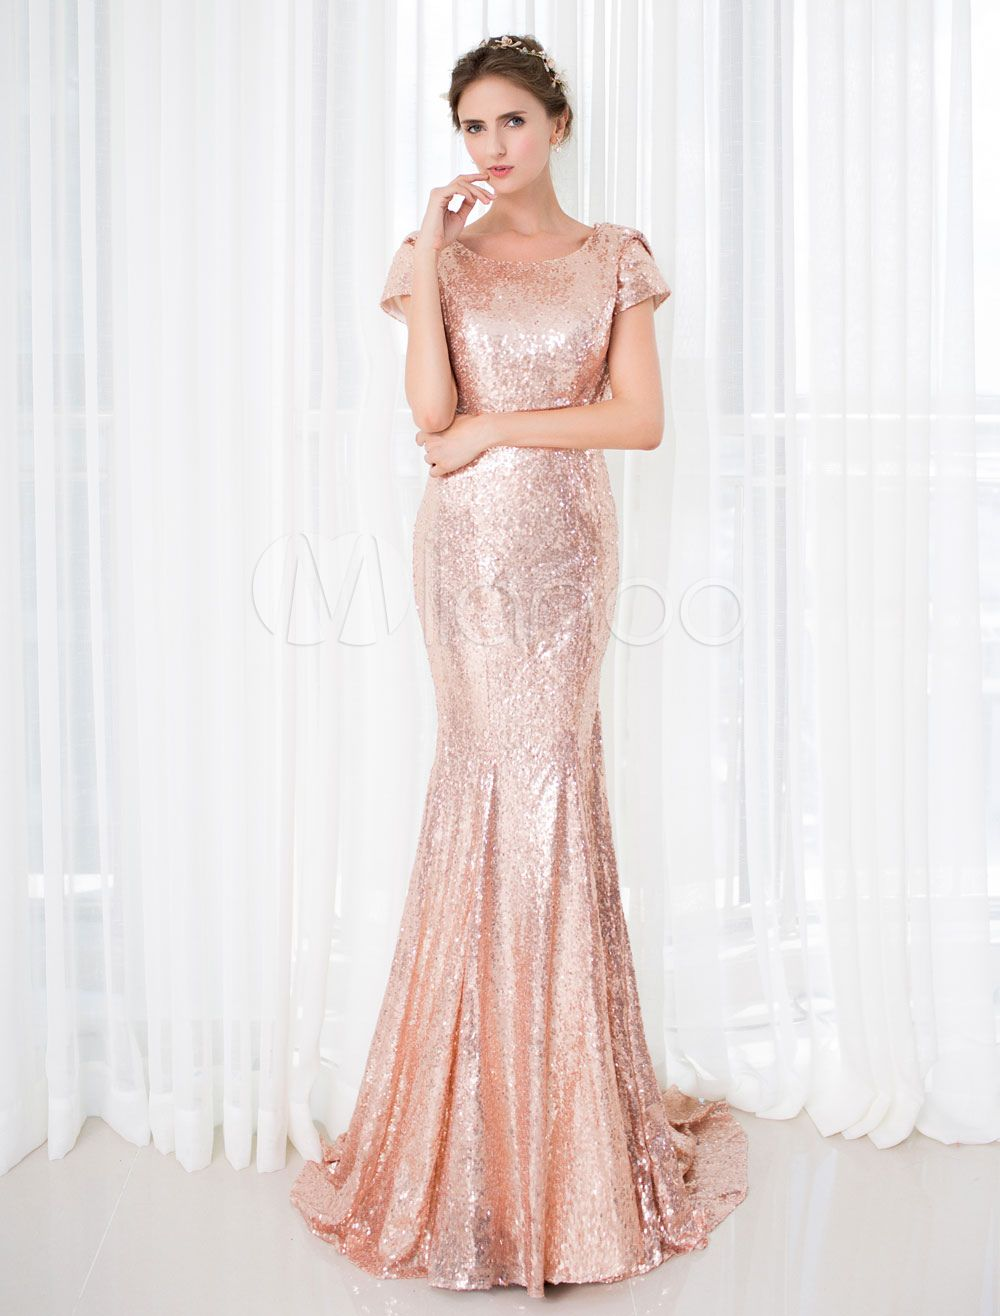 Rose gold prom dresses long nude mermaid backless evening dress